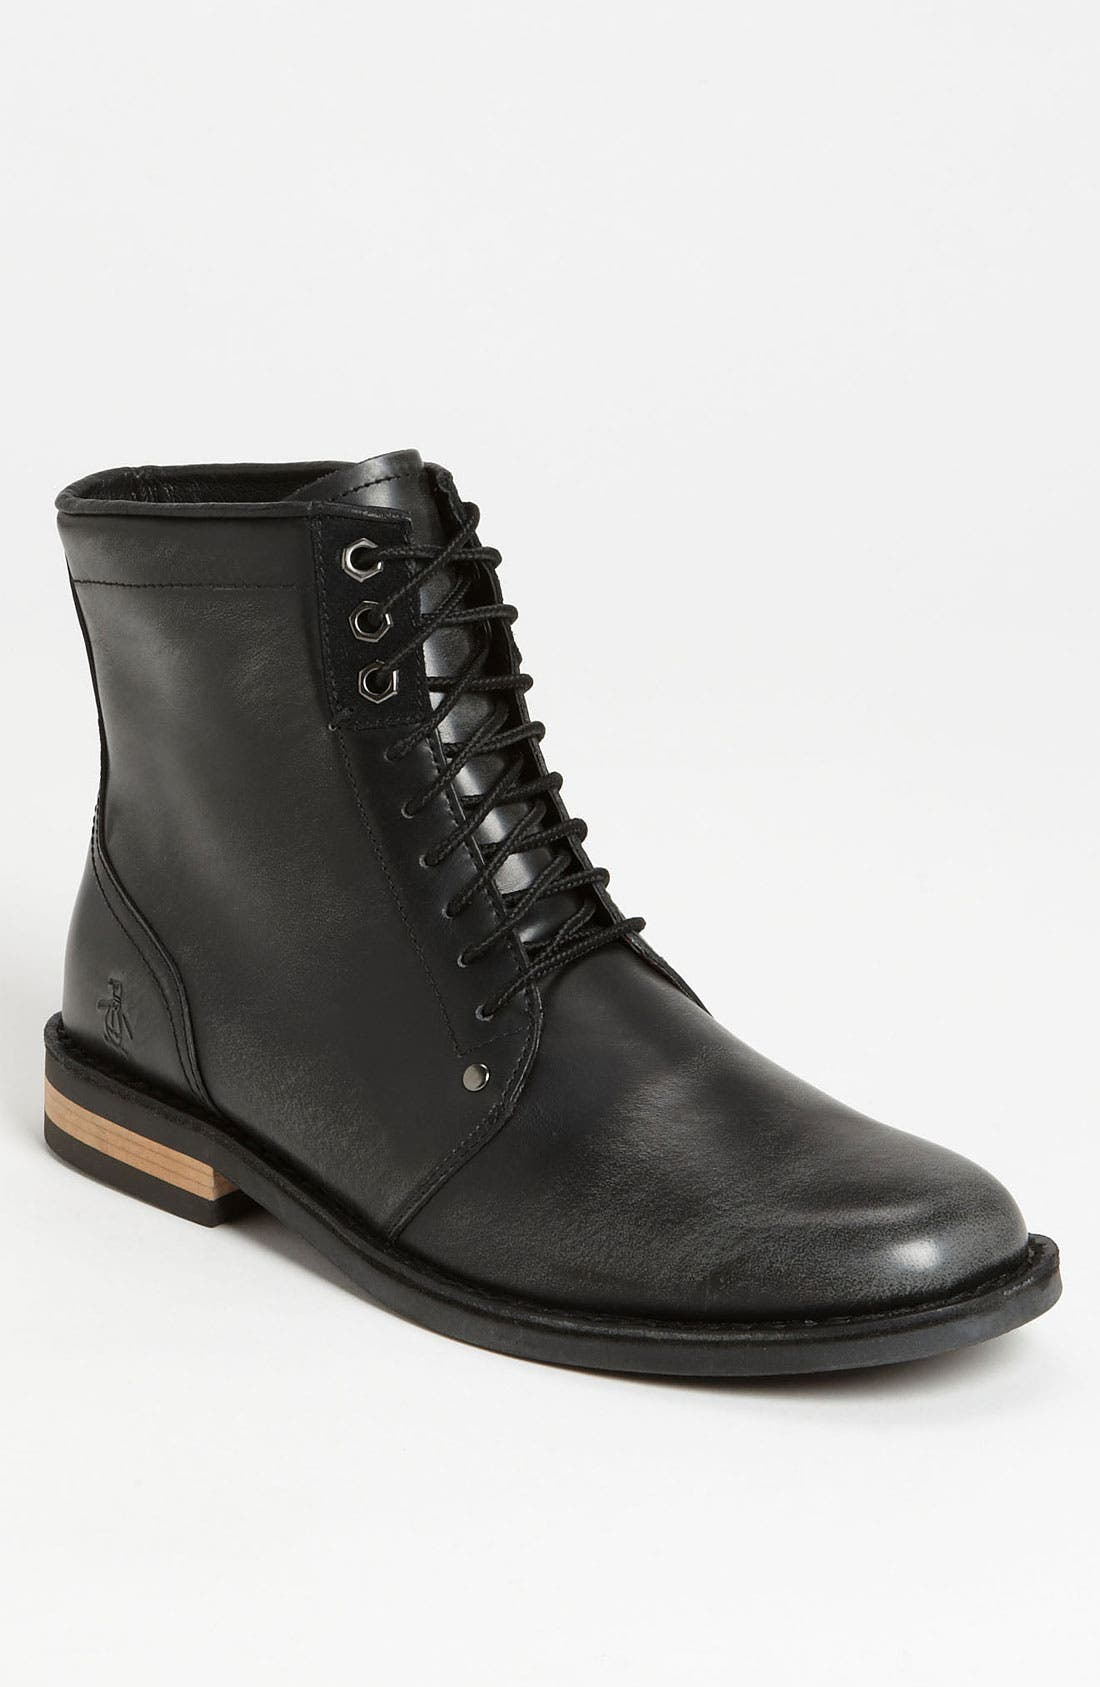 Main Image - Original Penguin 'Jerry Jeff' Boot (Online Exclusive)